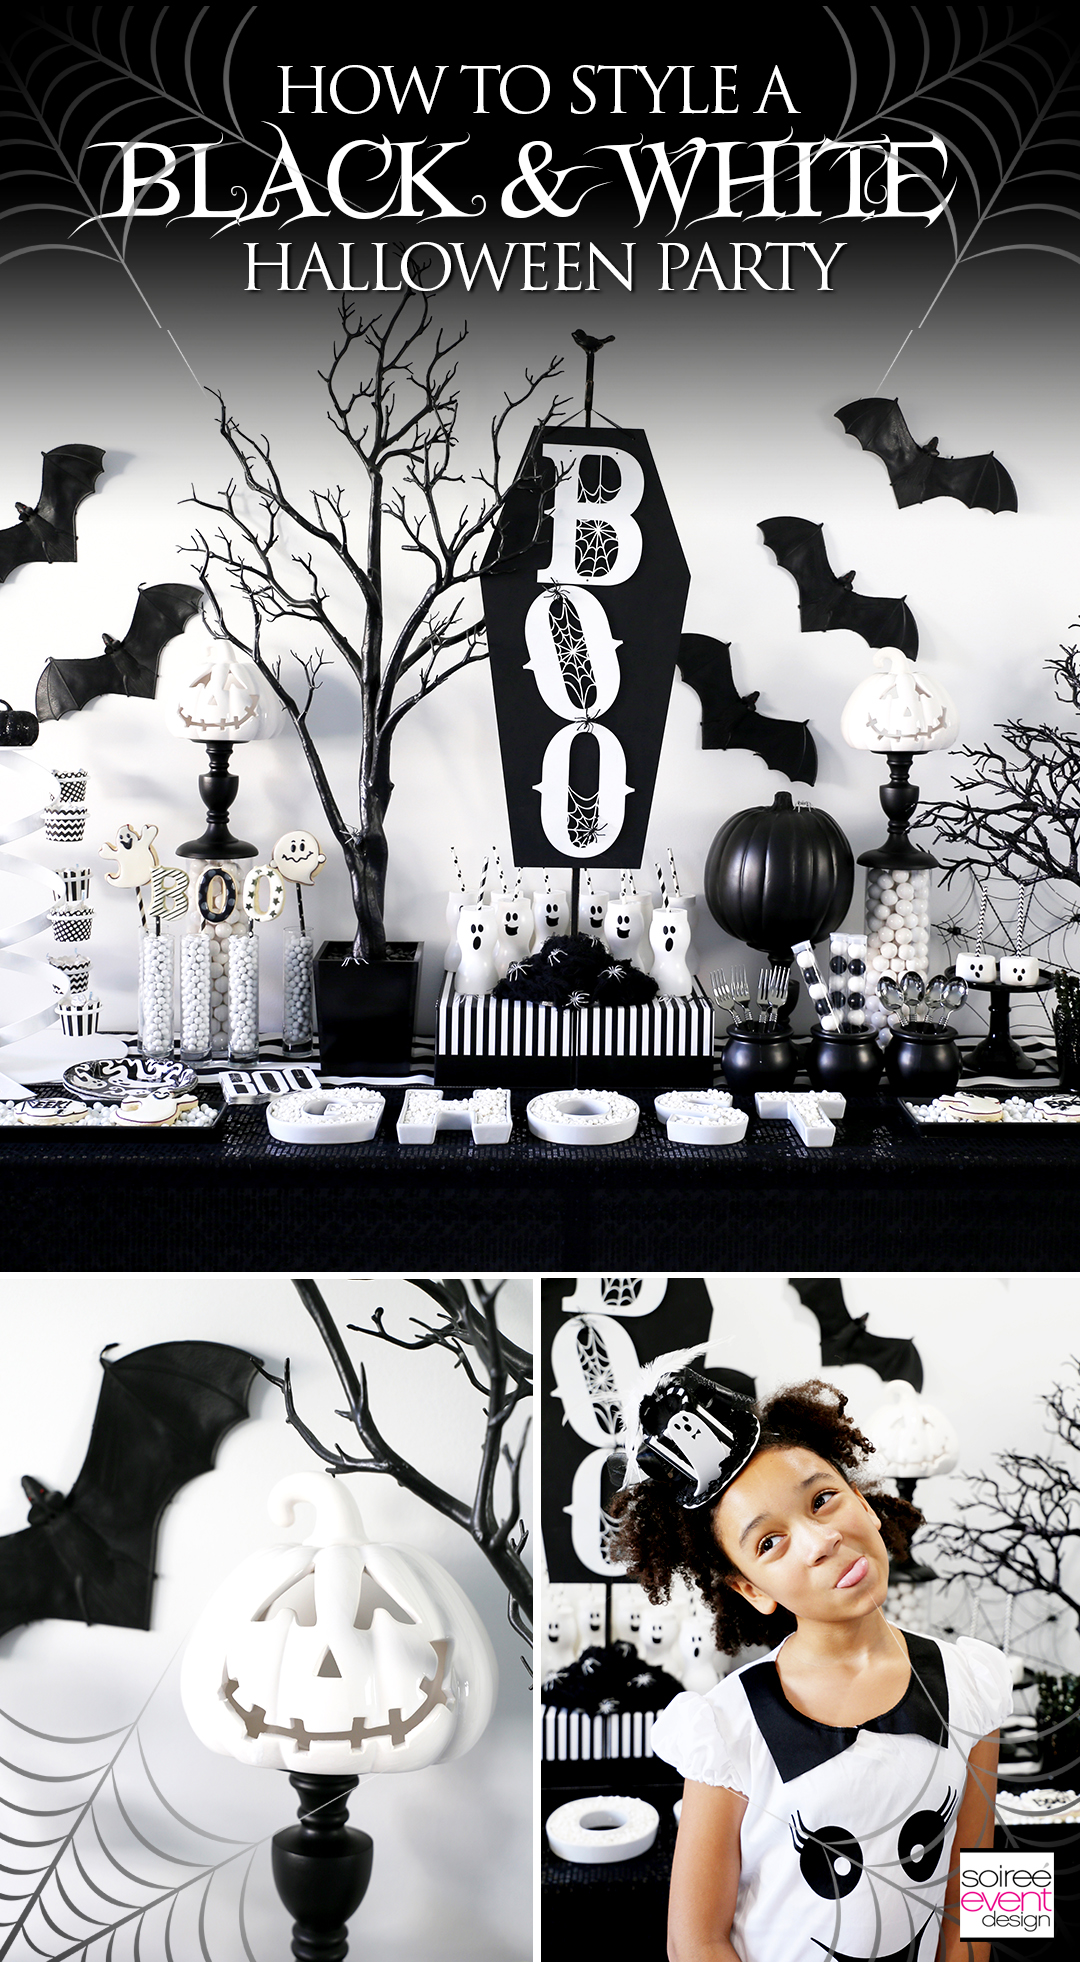 Black and White Halloween Party Ideas